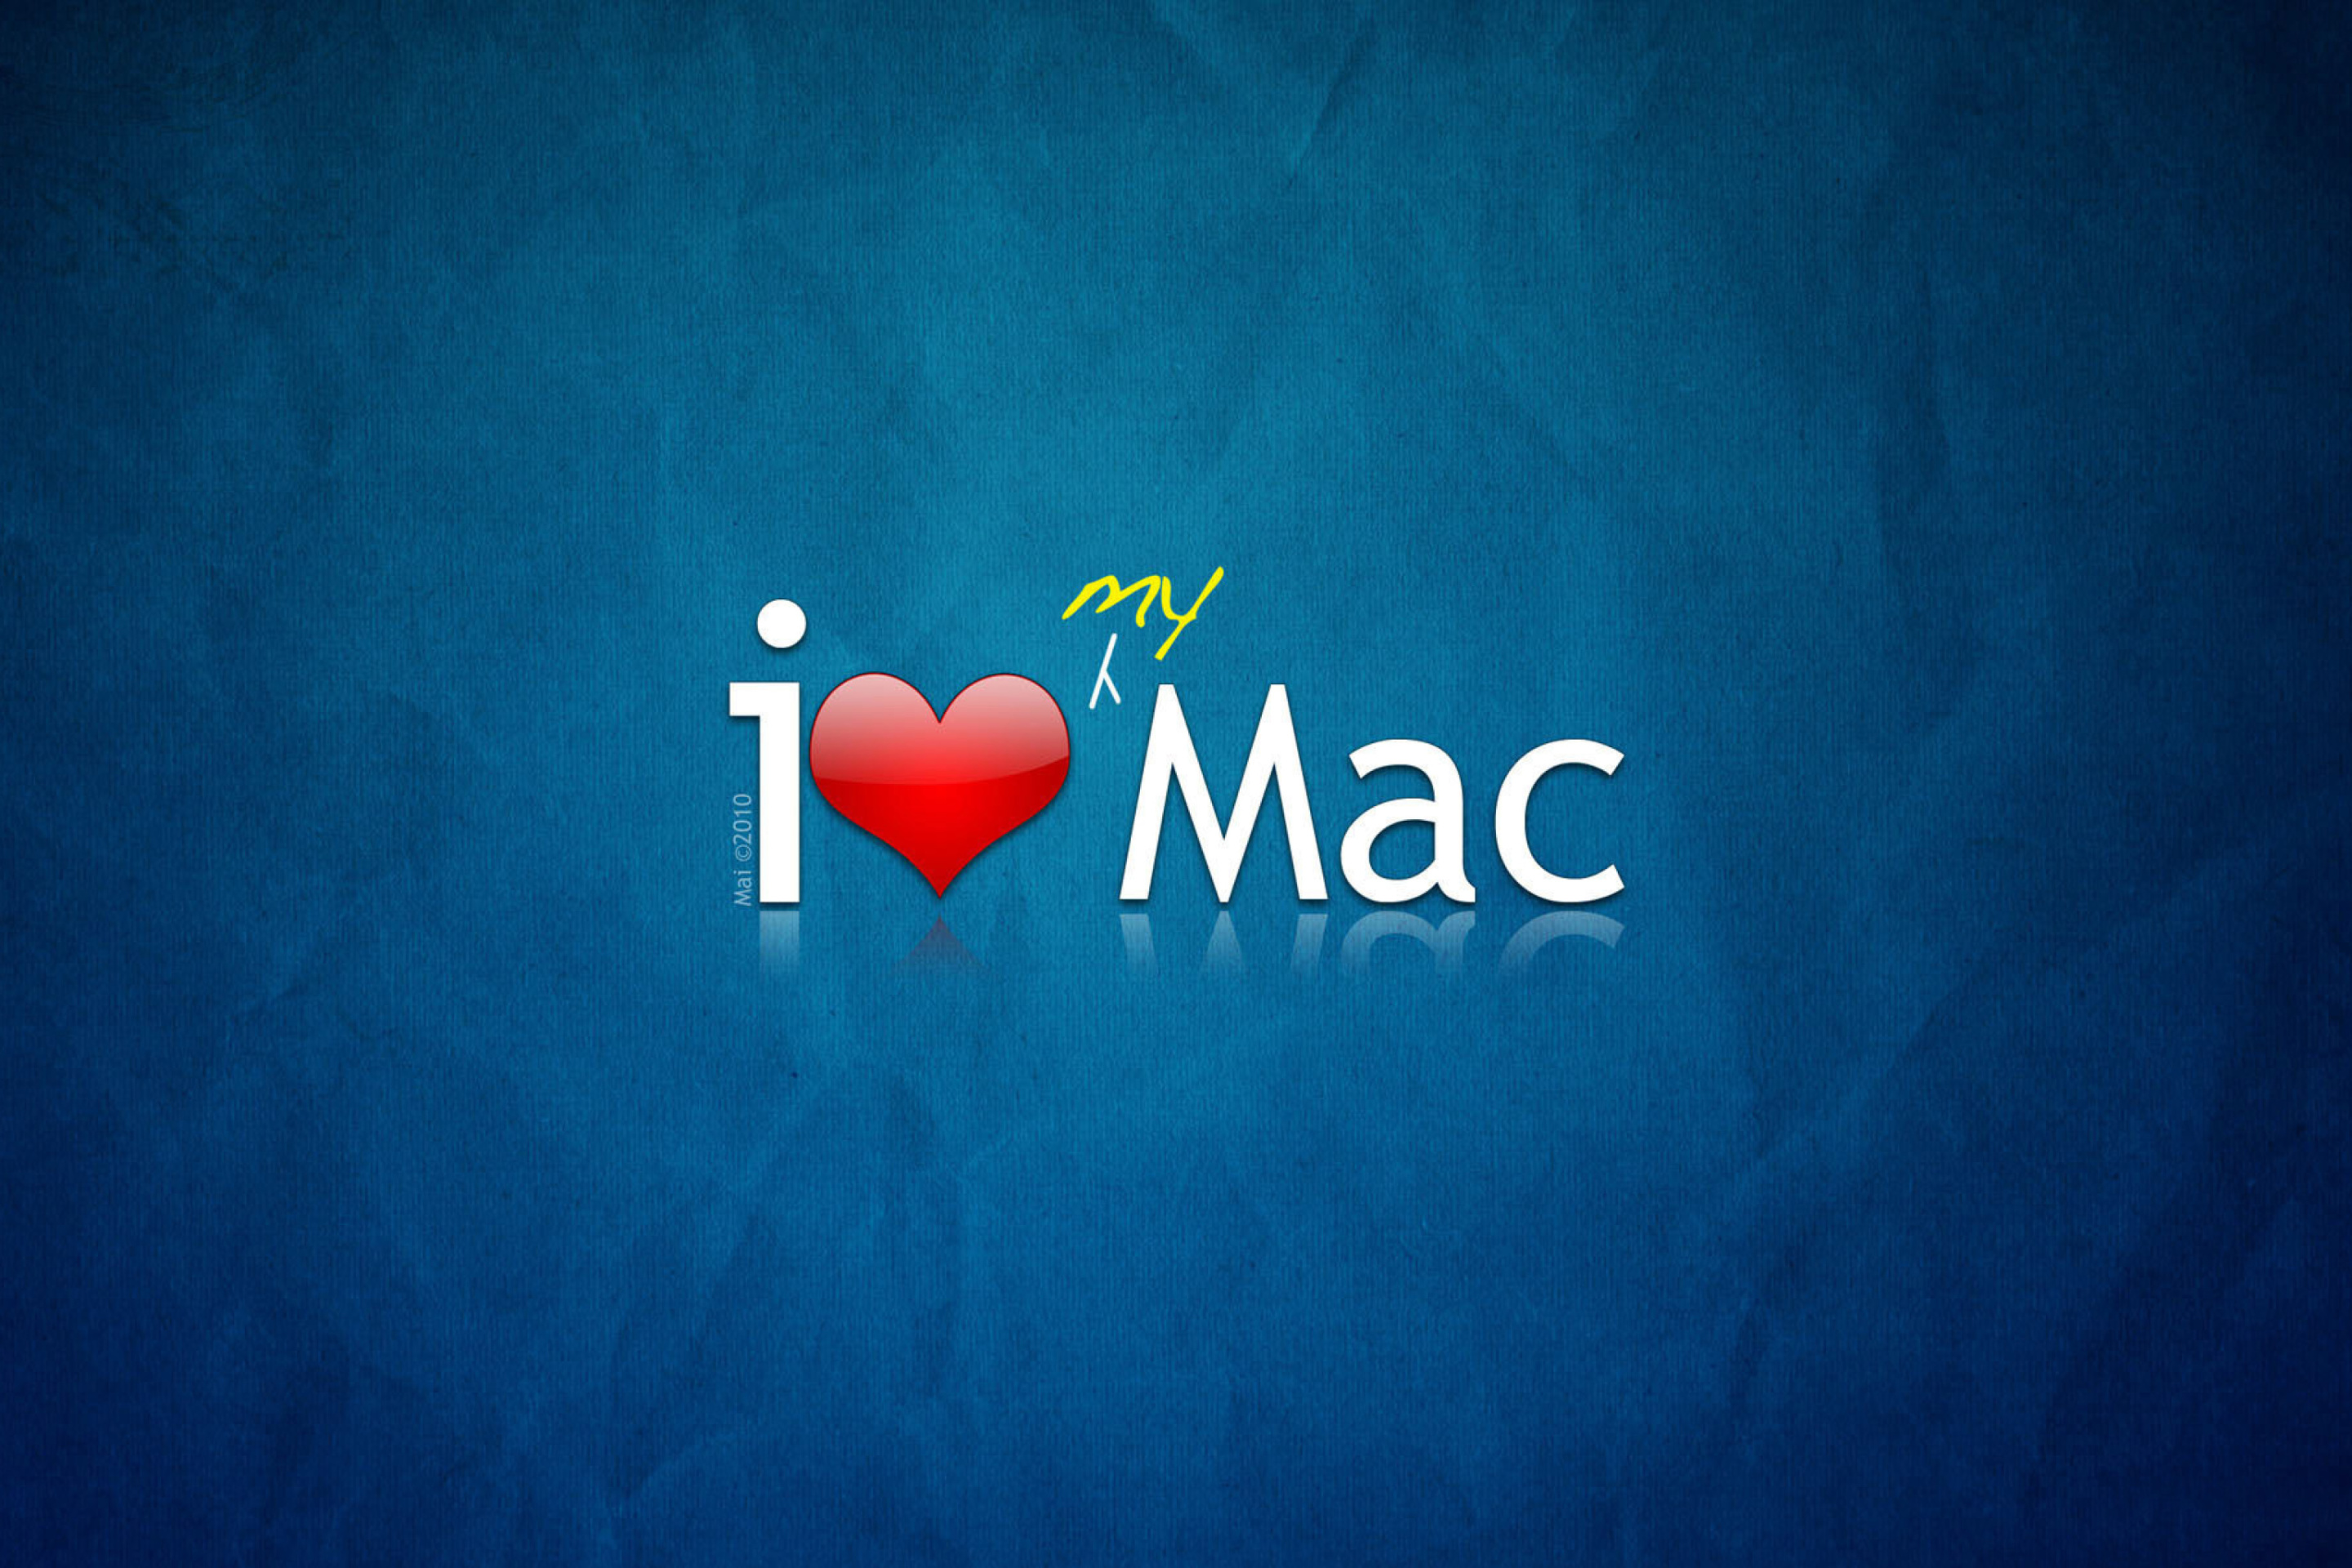 Das I love Mac Wallpaper 2880x1920